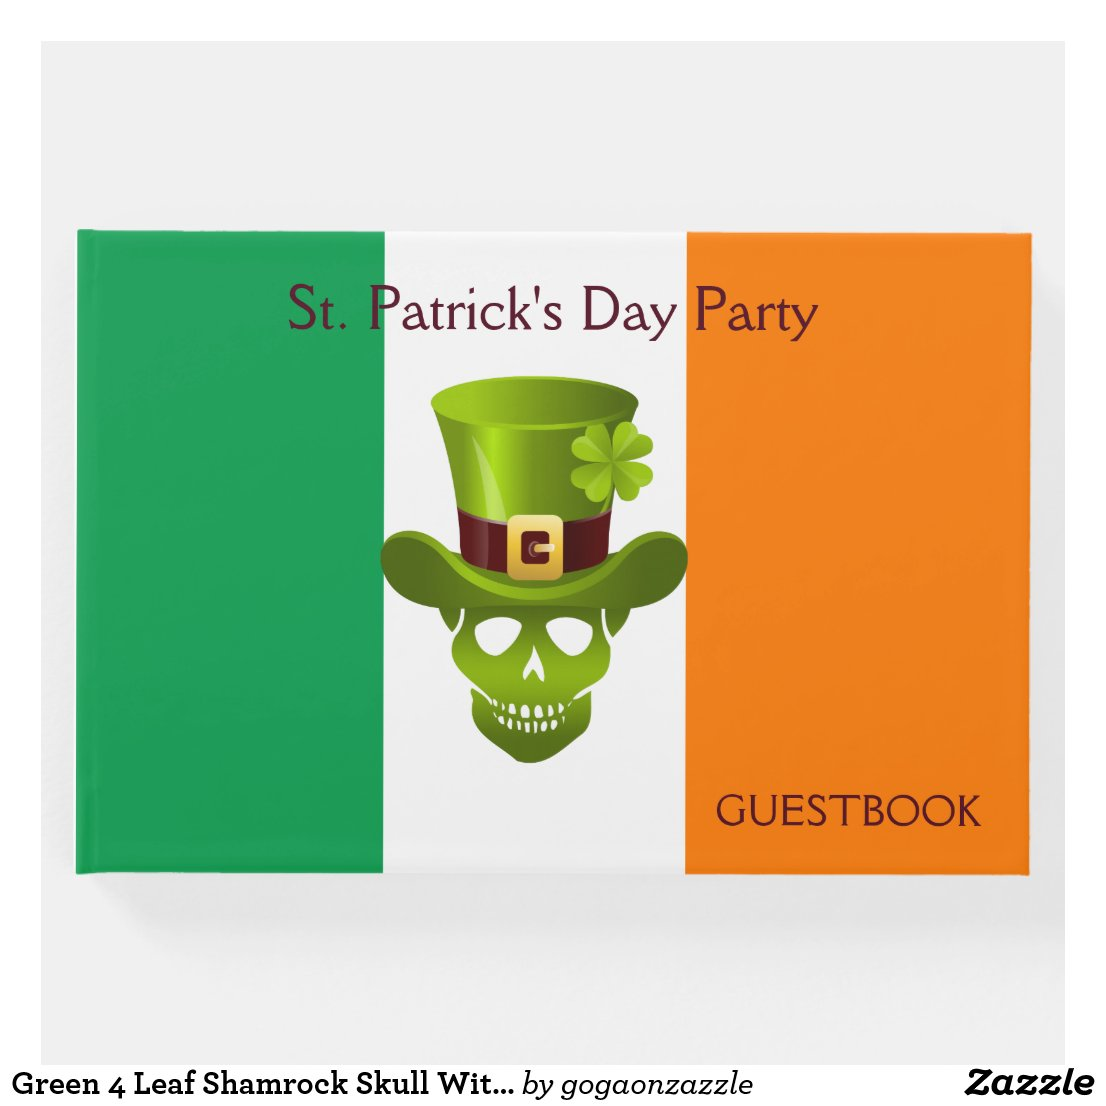 Green 4 Leaf Shamrock Skull With Hat